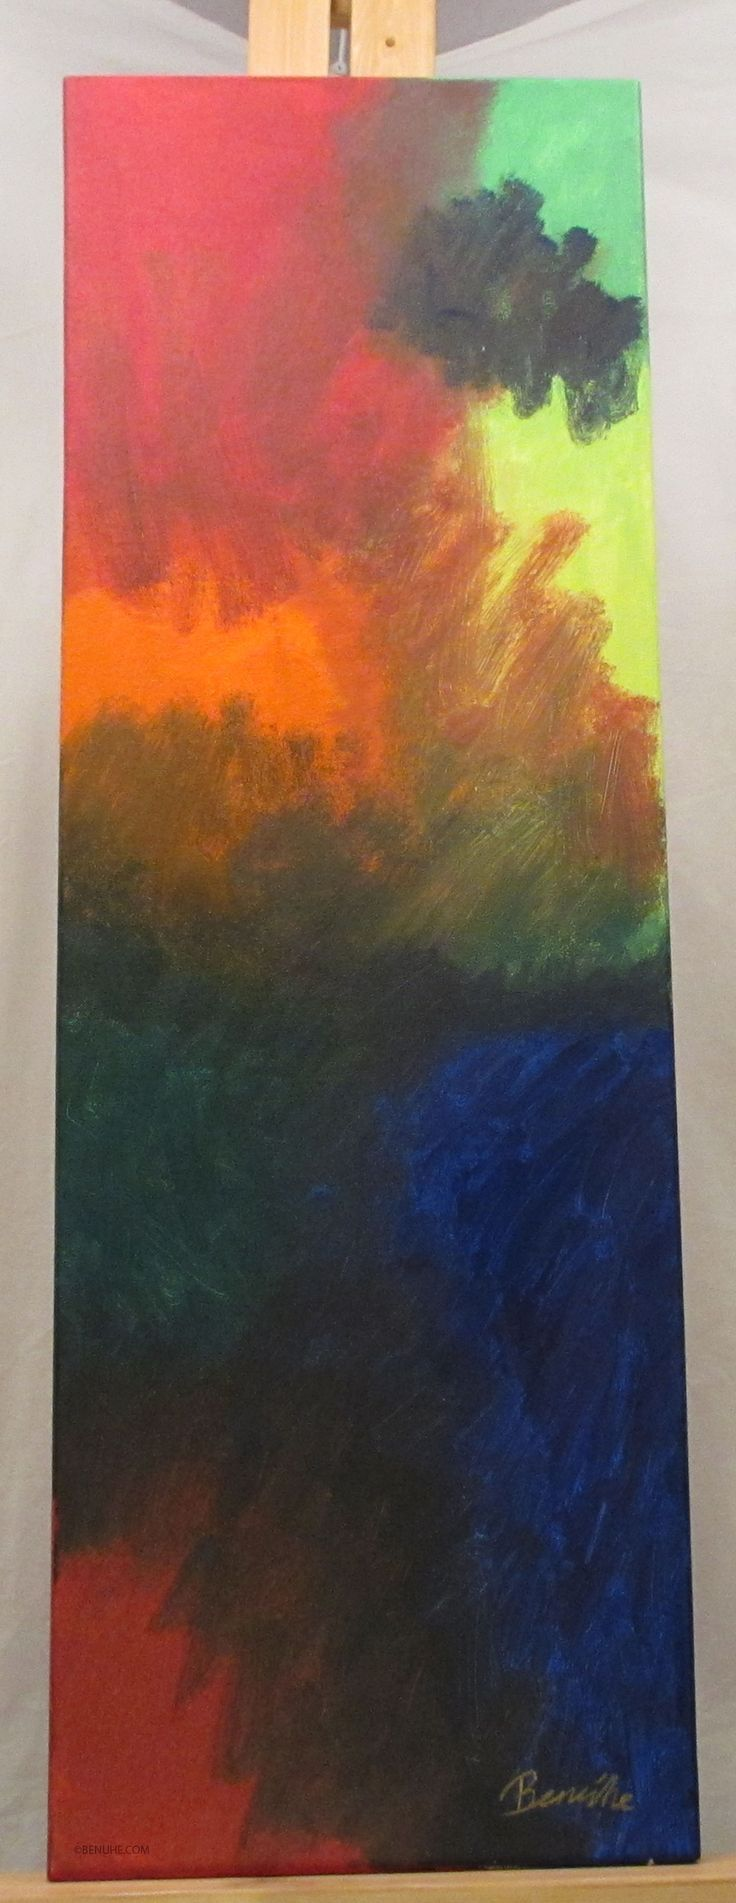 Mistake90x30cmAcrylic paint on canvas